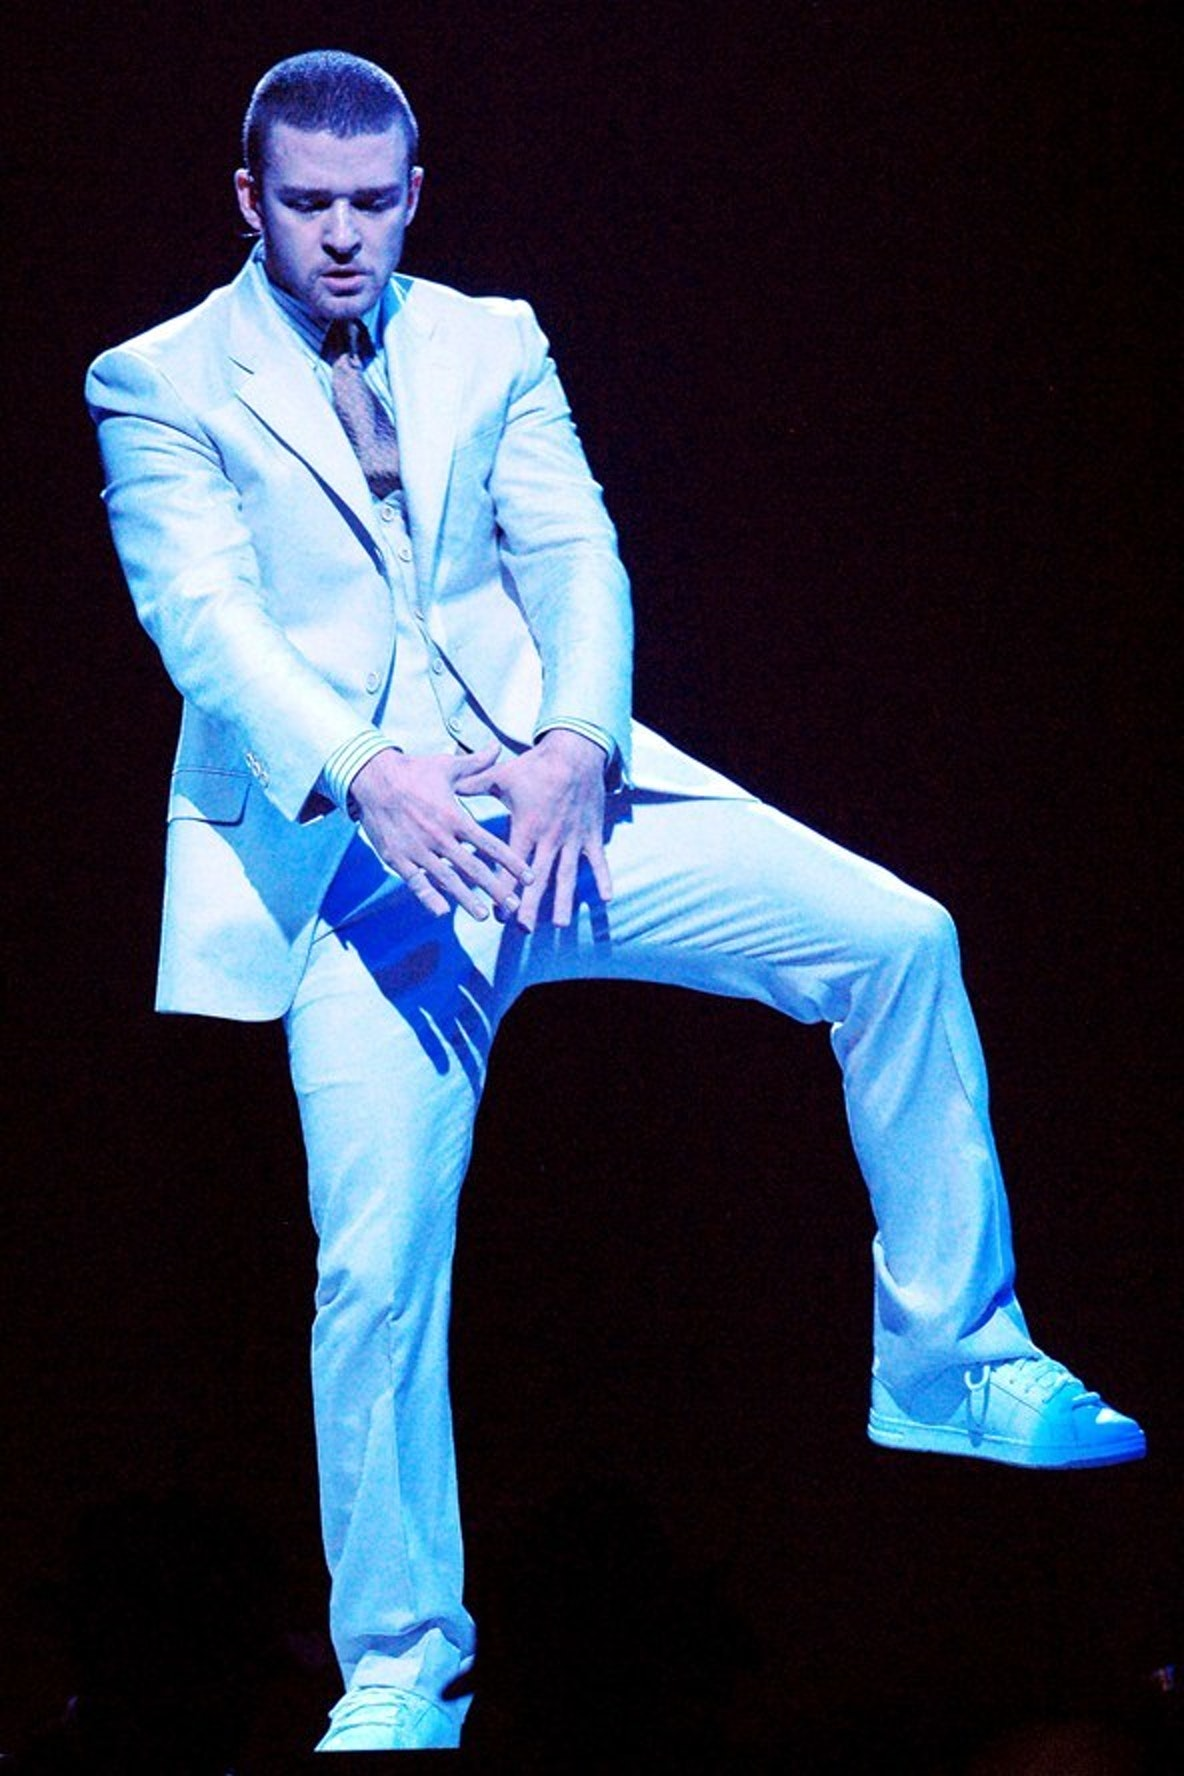 JT on the FutureSex/LoveSounds tour.